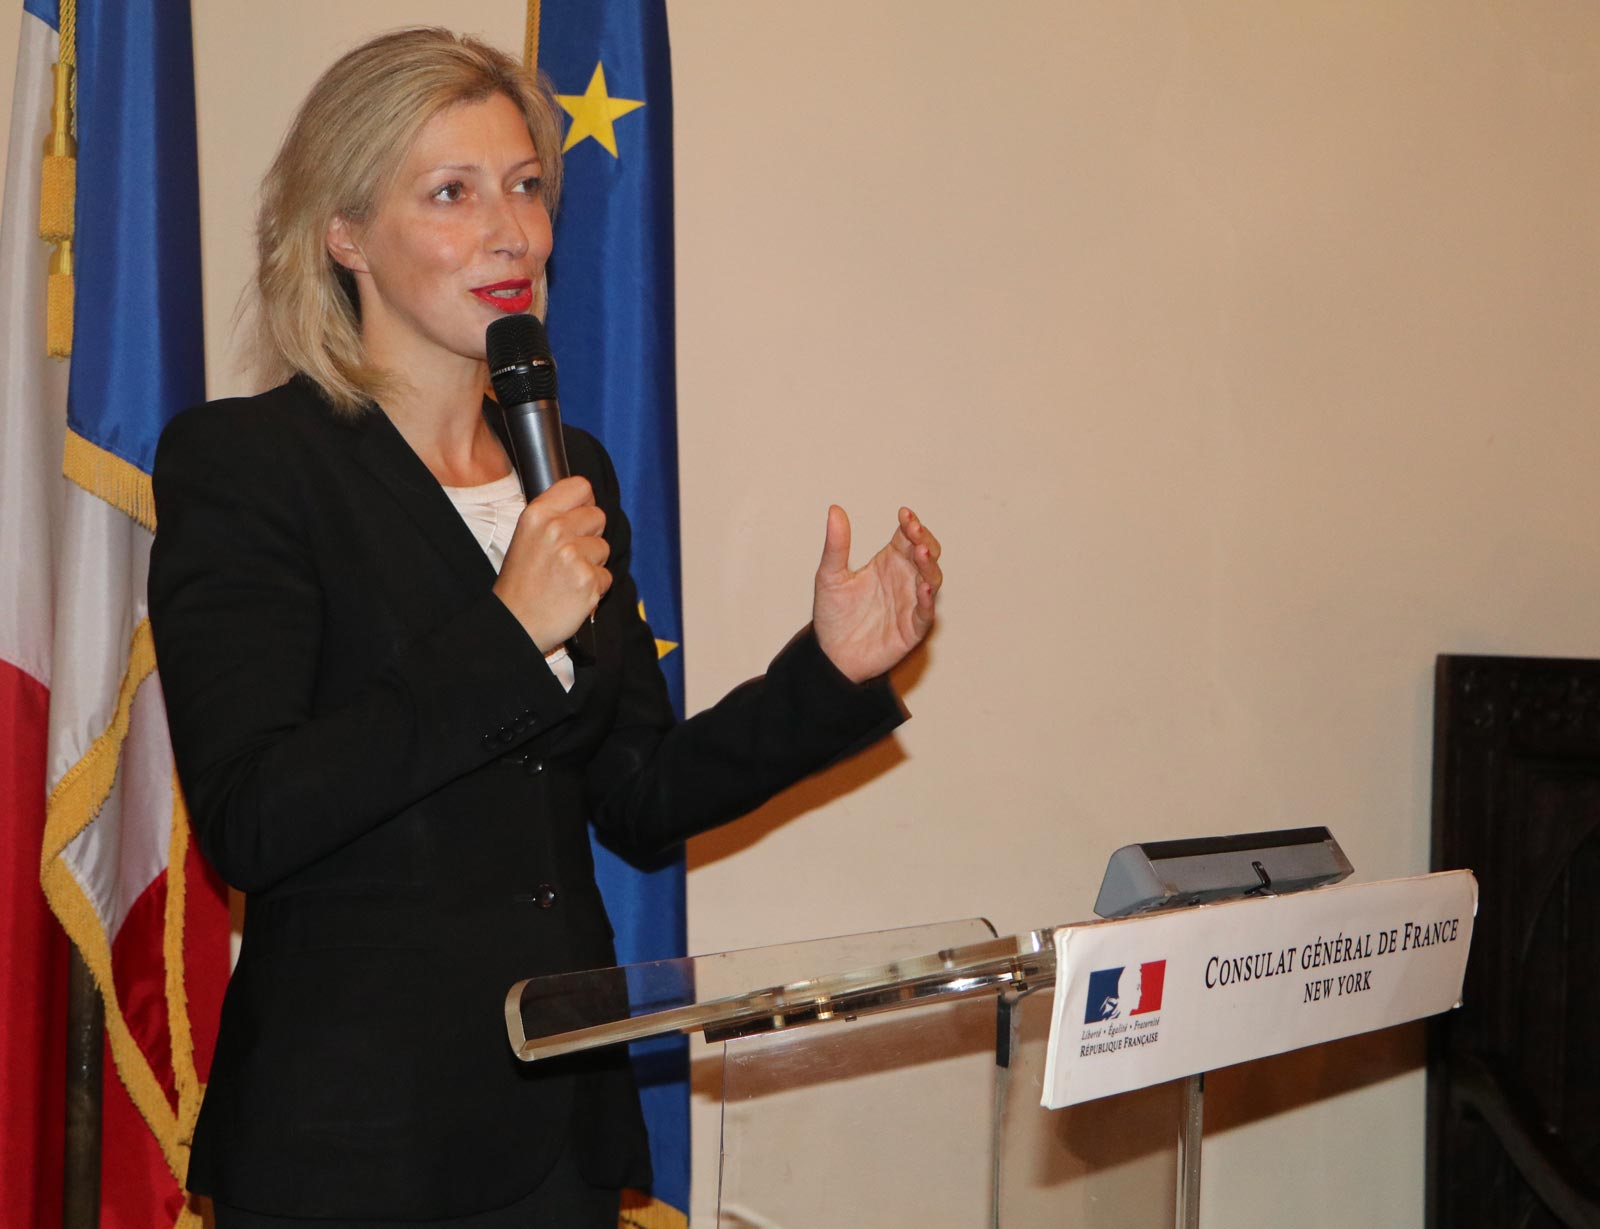 The Consul General of France Anne Claire Legendre